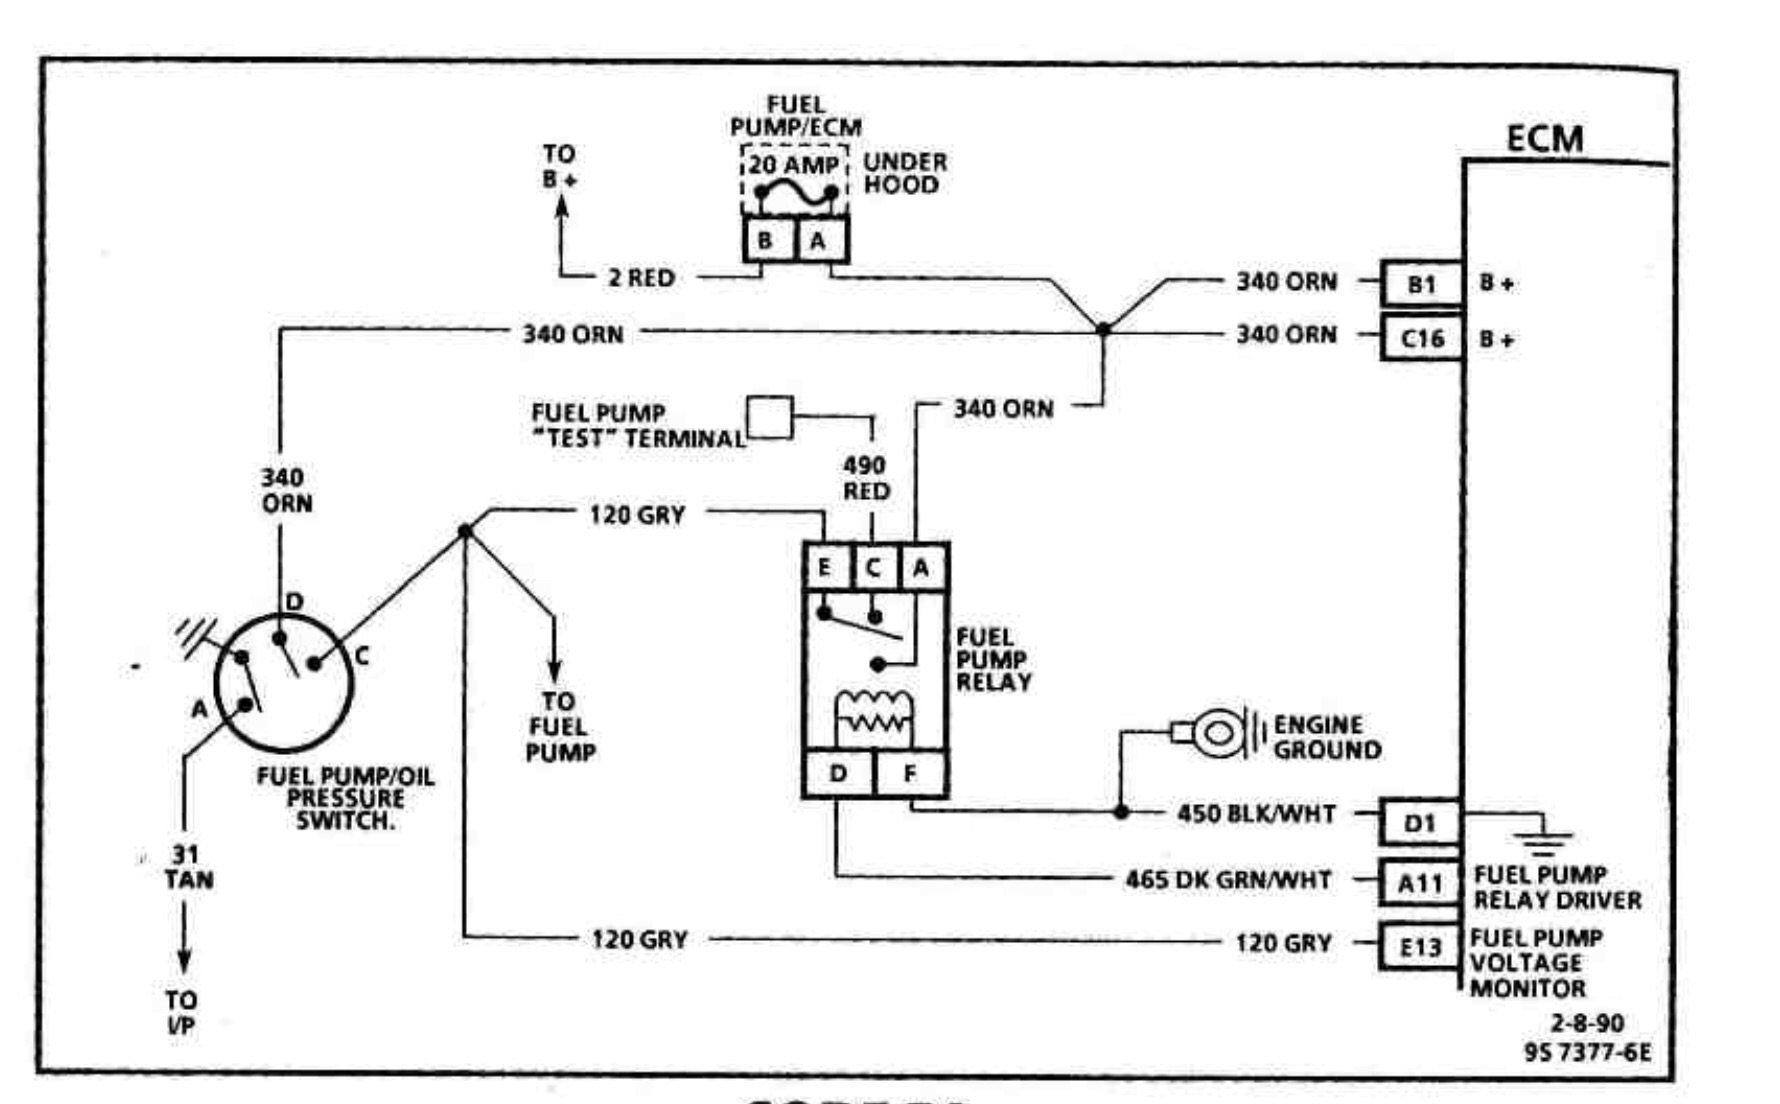 hight resolution of here is a picture of that circuit if the eco ops and relay are all unplugged you will need to dig into the harness where it y s bye the fan blower